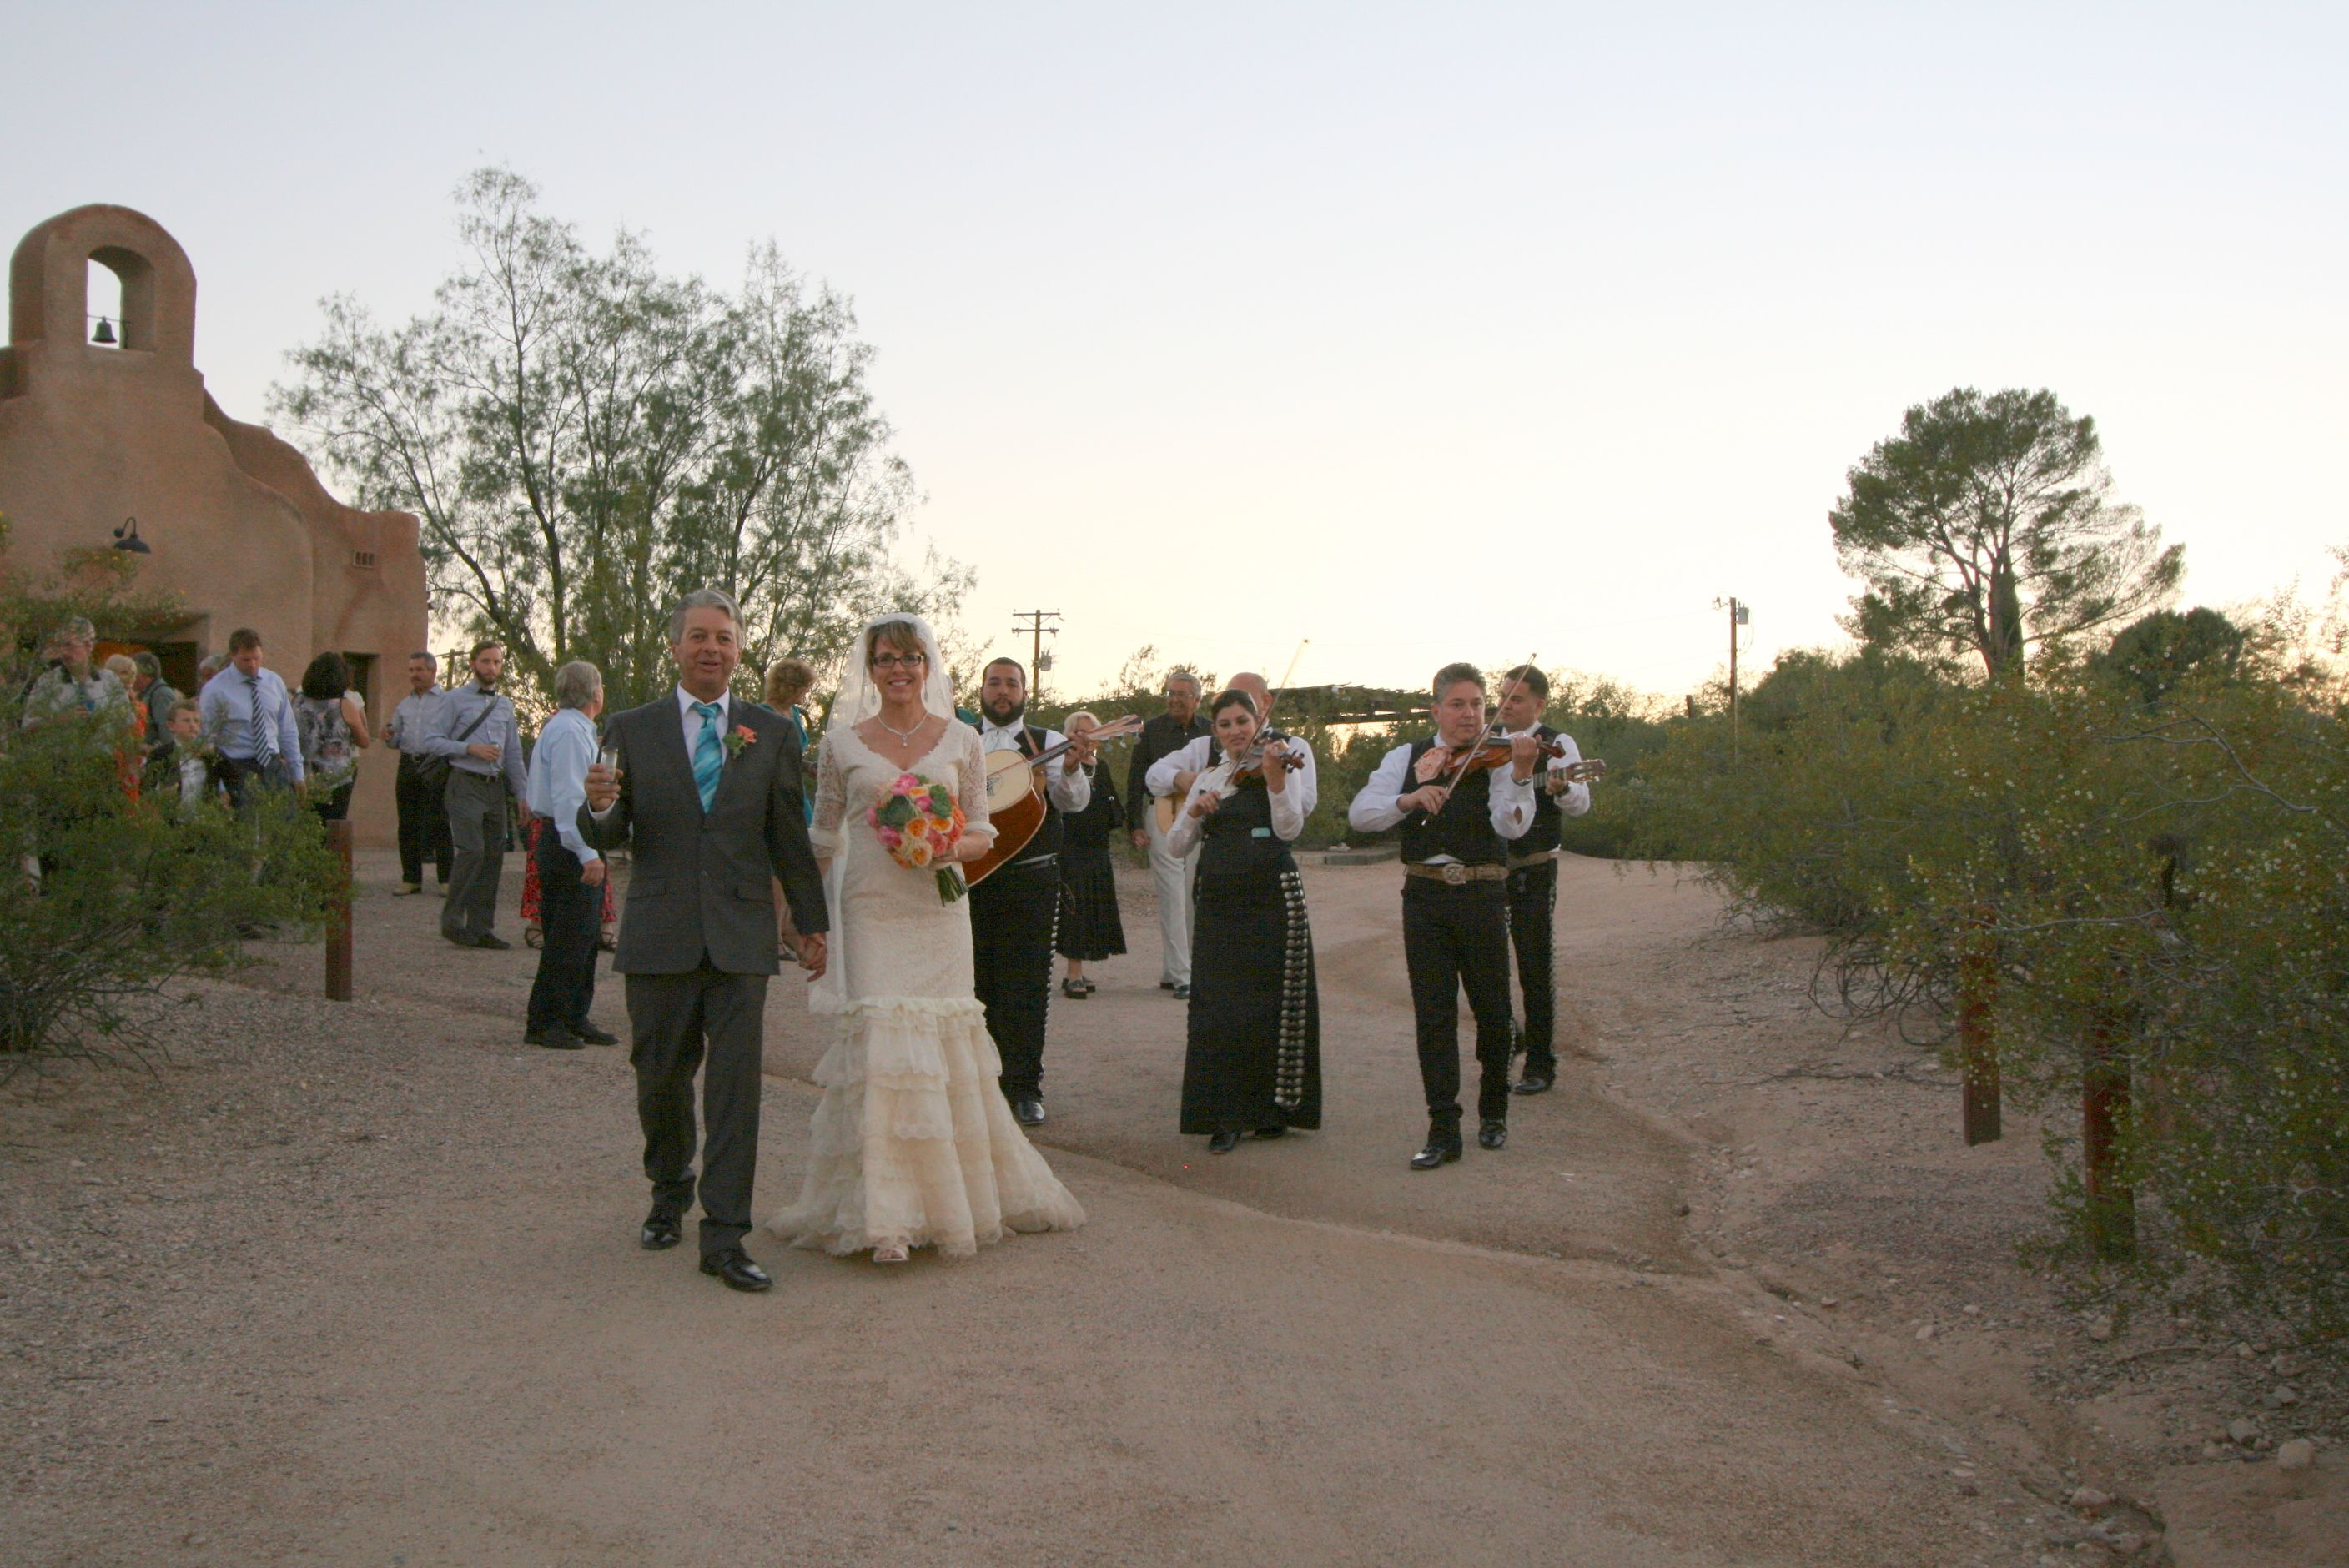 Wedding parade with Mariachi at San Pedro Chapel in Tucson, Arizona ...